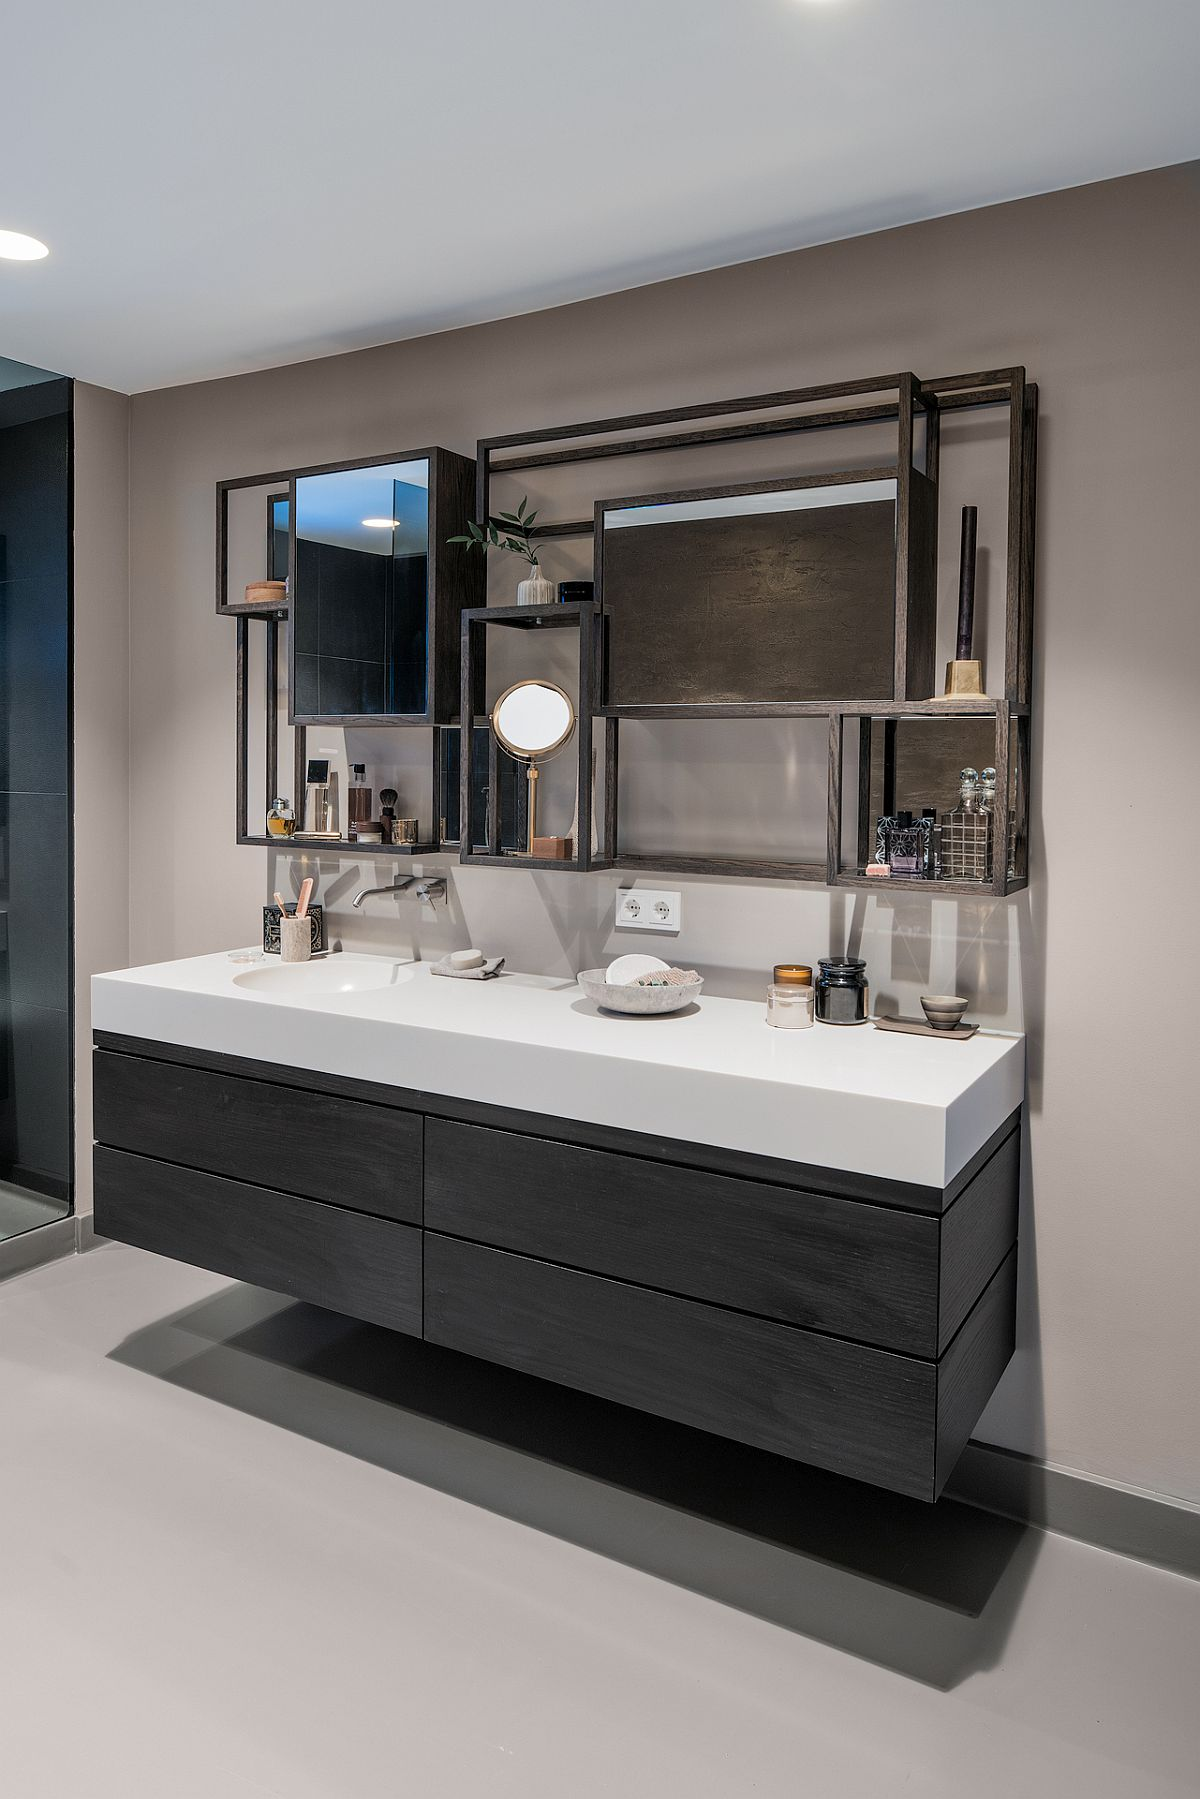 Floating vanity with smart shelving above it is the showstopper in this sleek contemporary bathroom